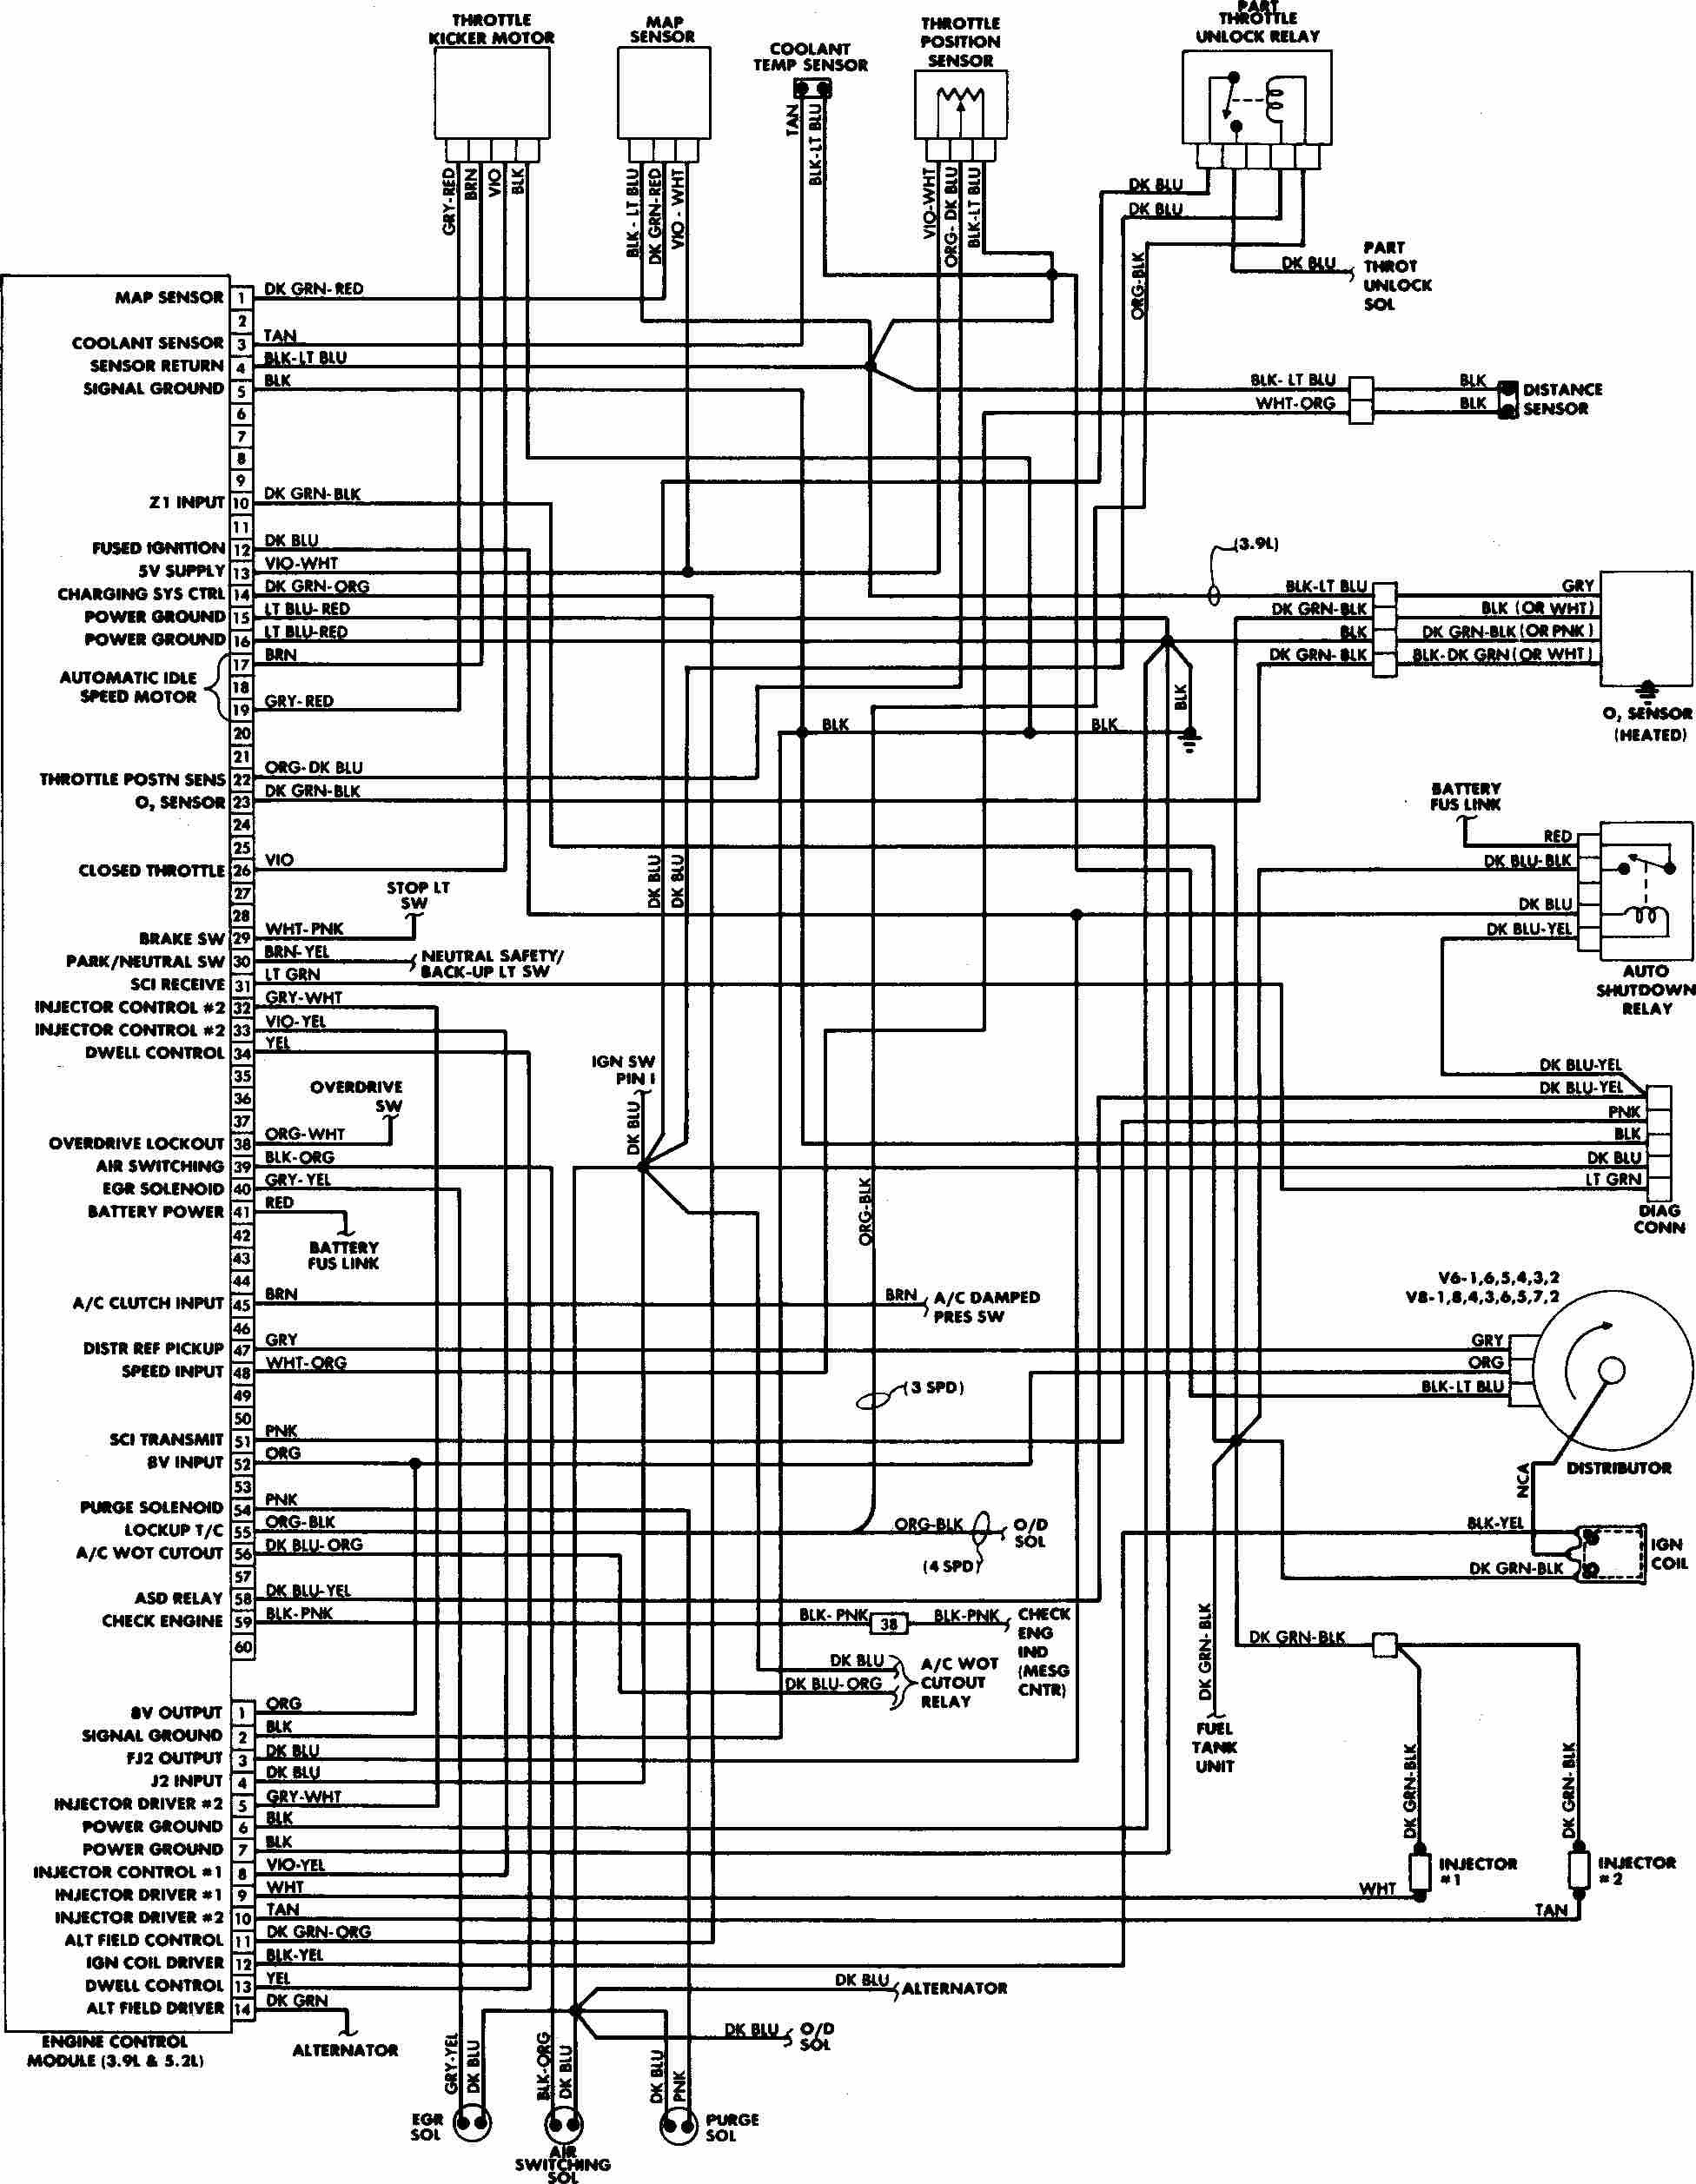 2003 dodge 2500 ignition wiring 2014 dodge ram wiring diagram | free wiring diagram #3